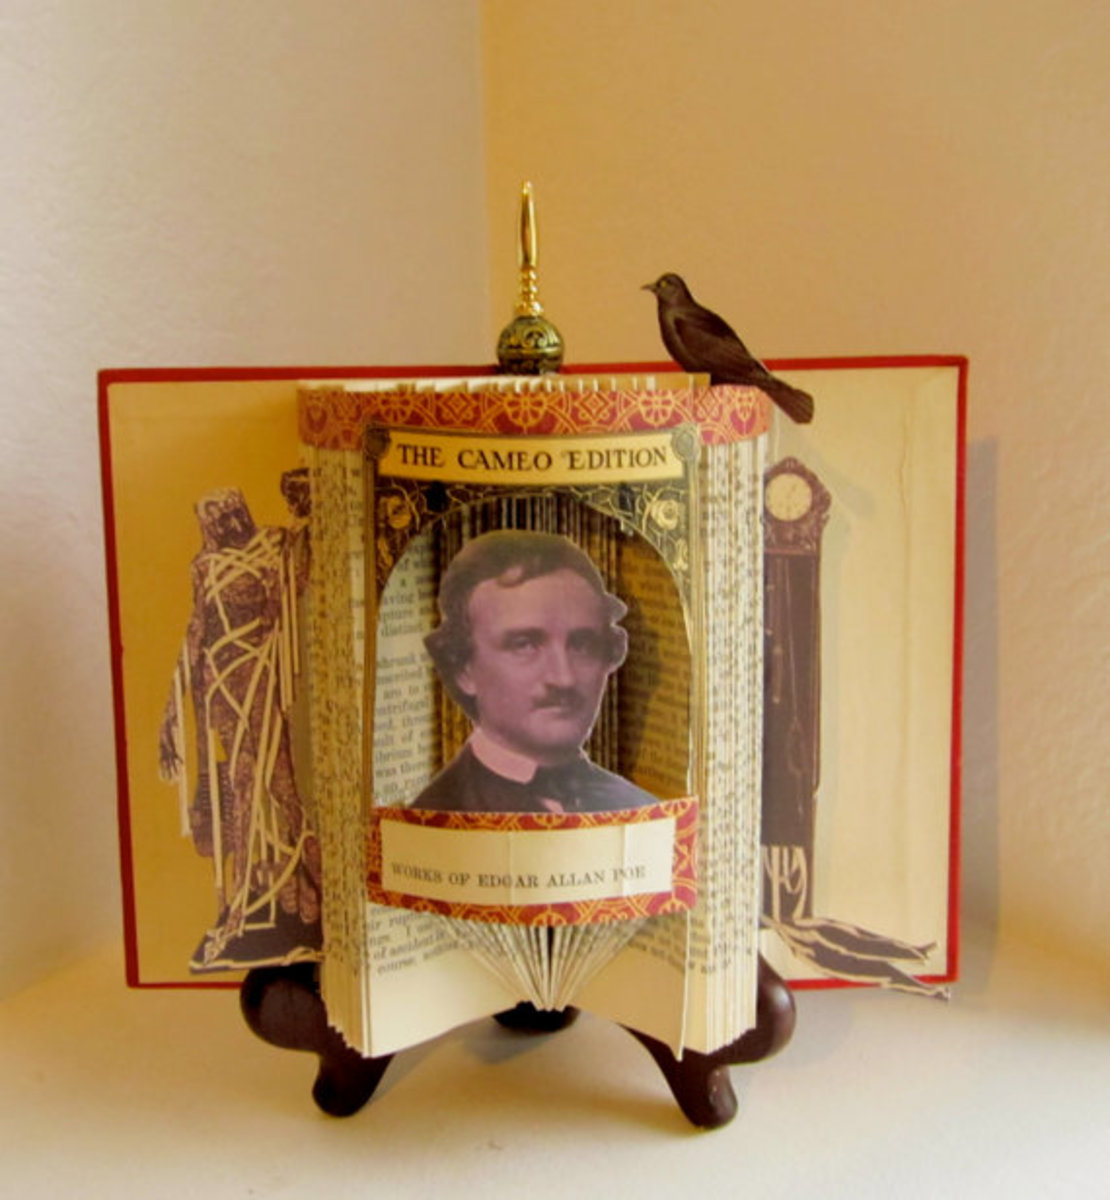 Art created by Susan Hoerth and featured in her Etsy store, called RaidersoftheLostArt. The topic is Works of Edgar Allan Poe.